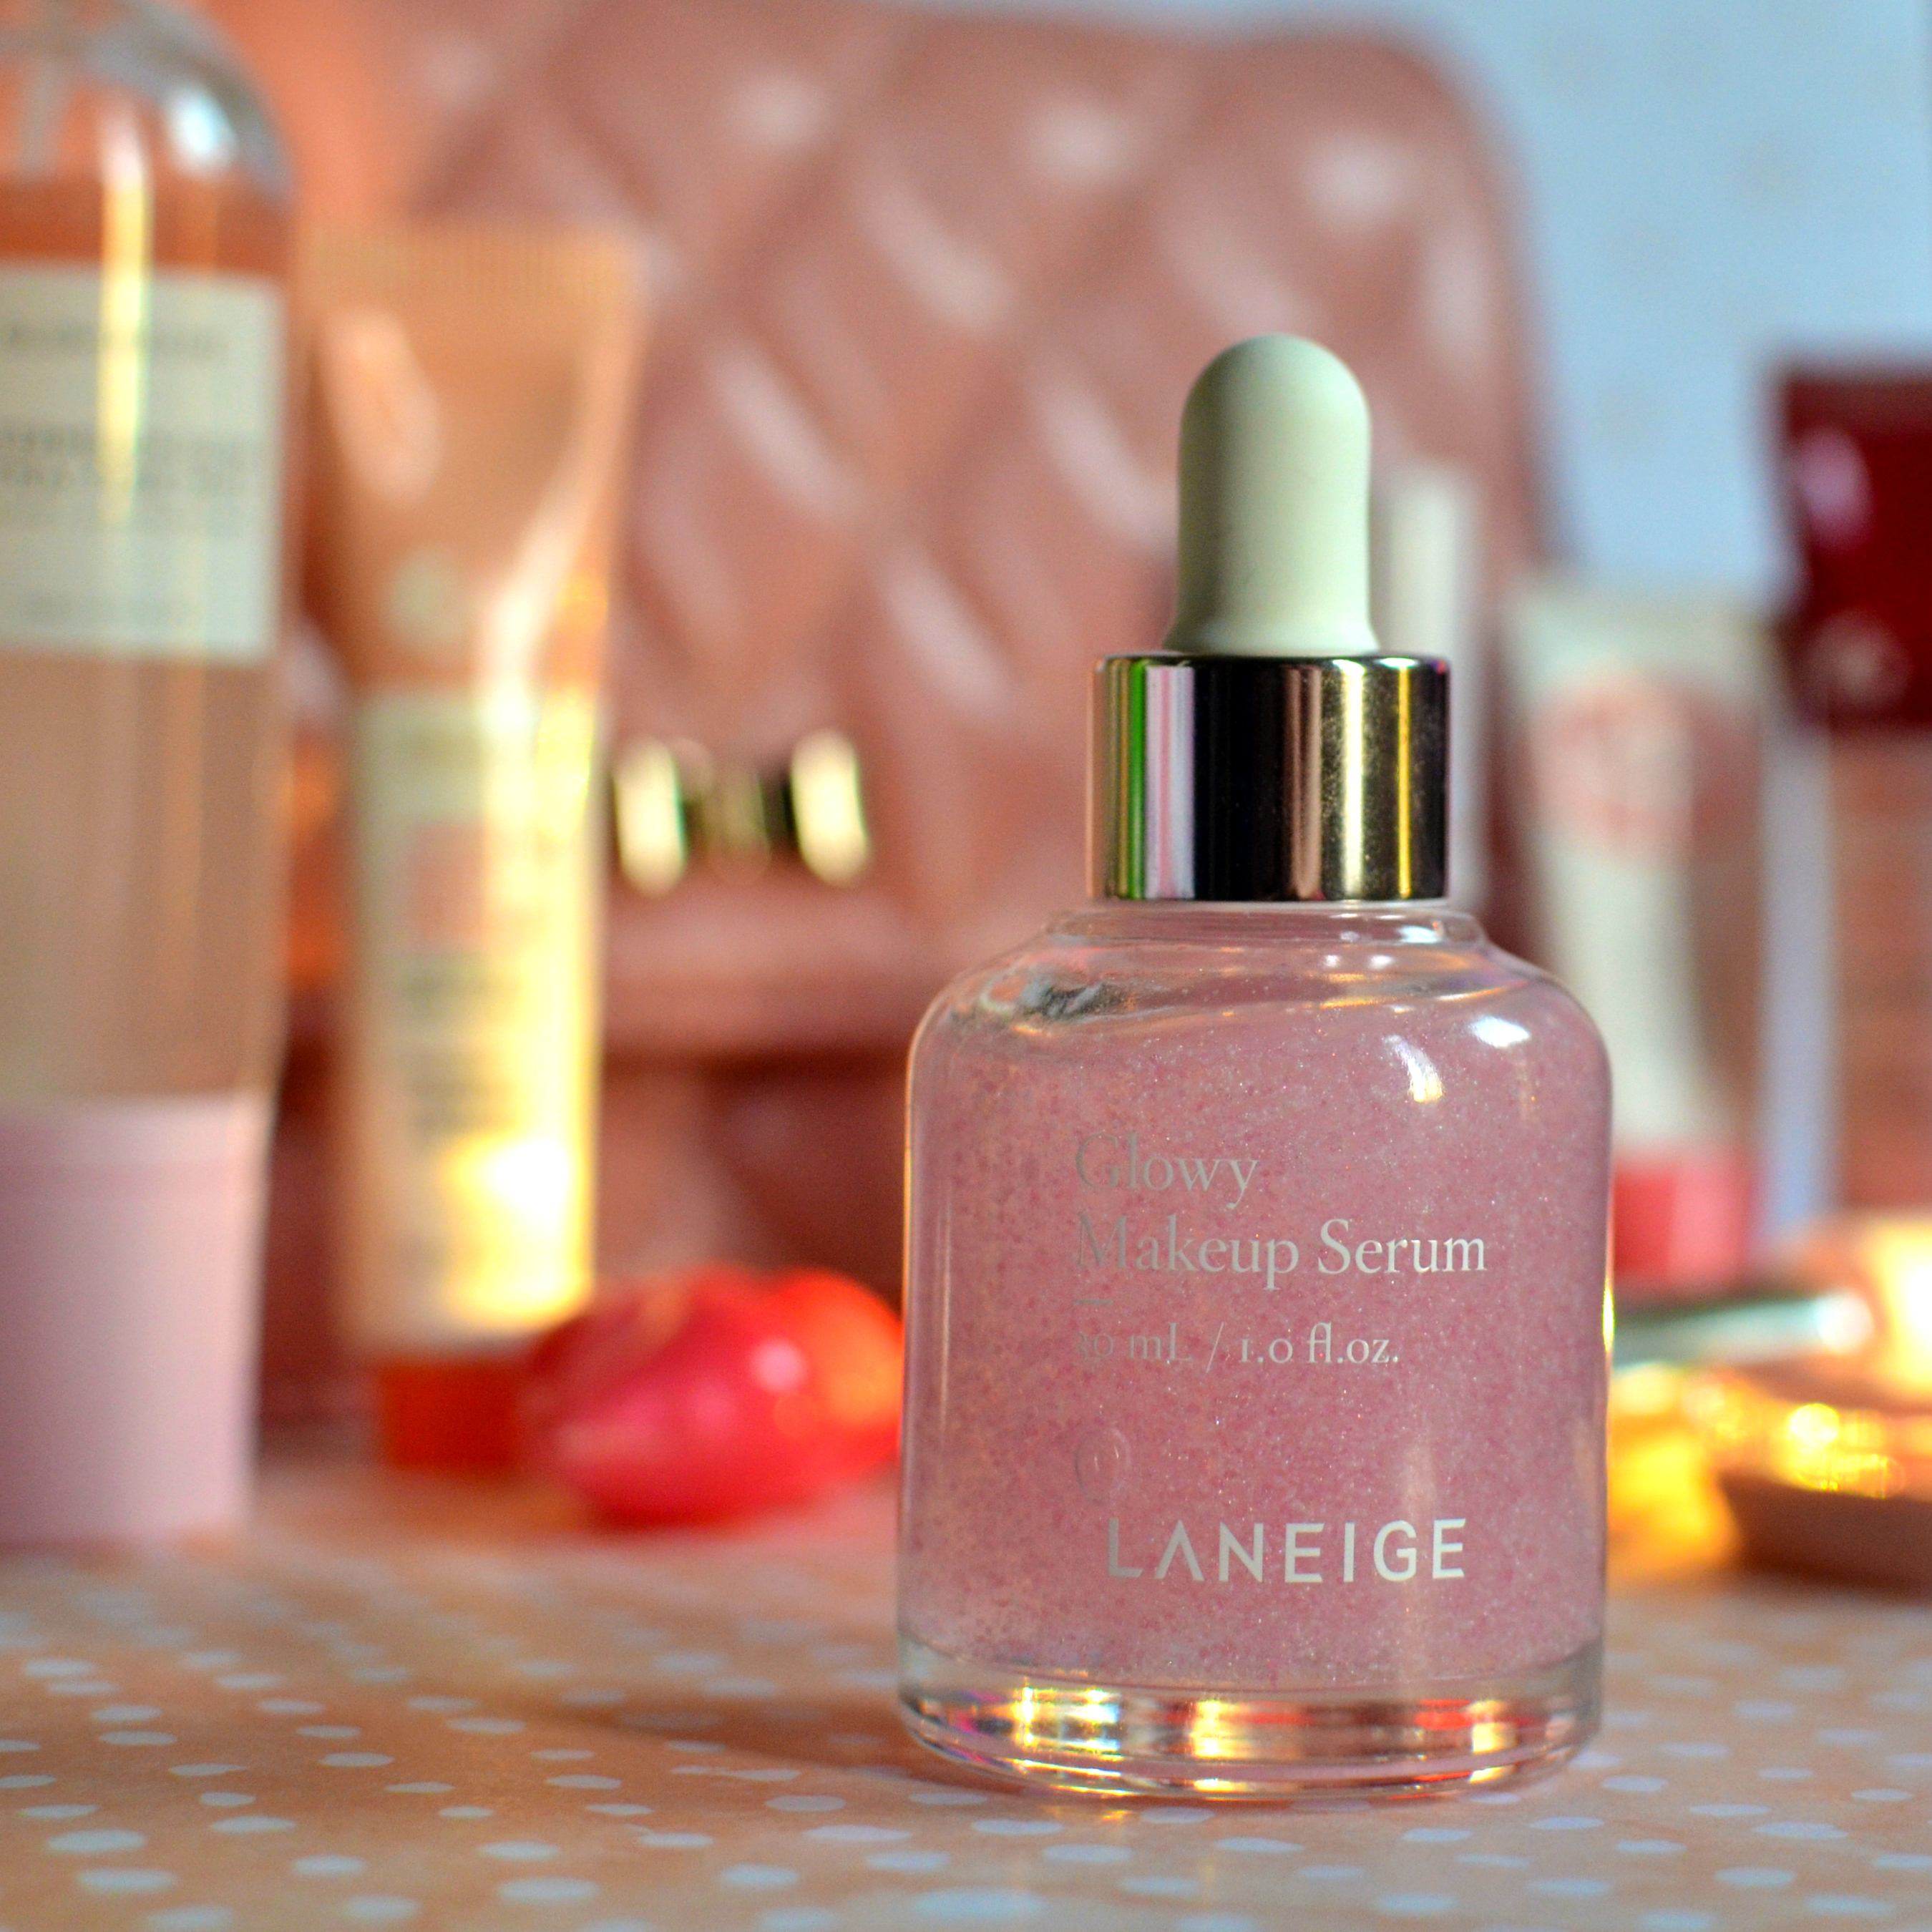 Glowy Makeup Serum by Laneige #15